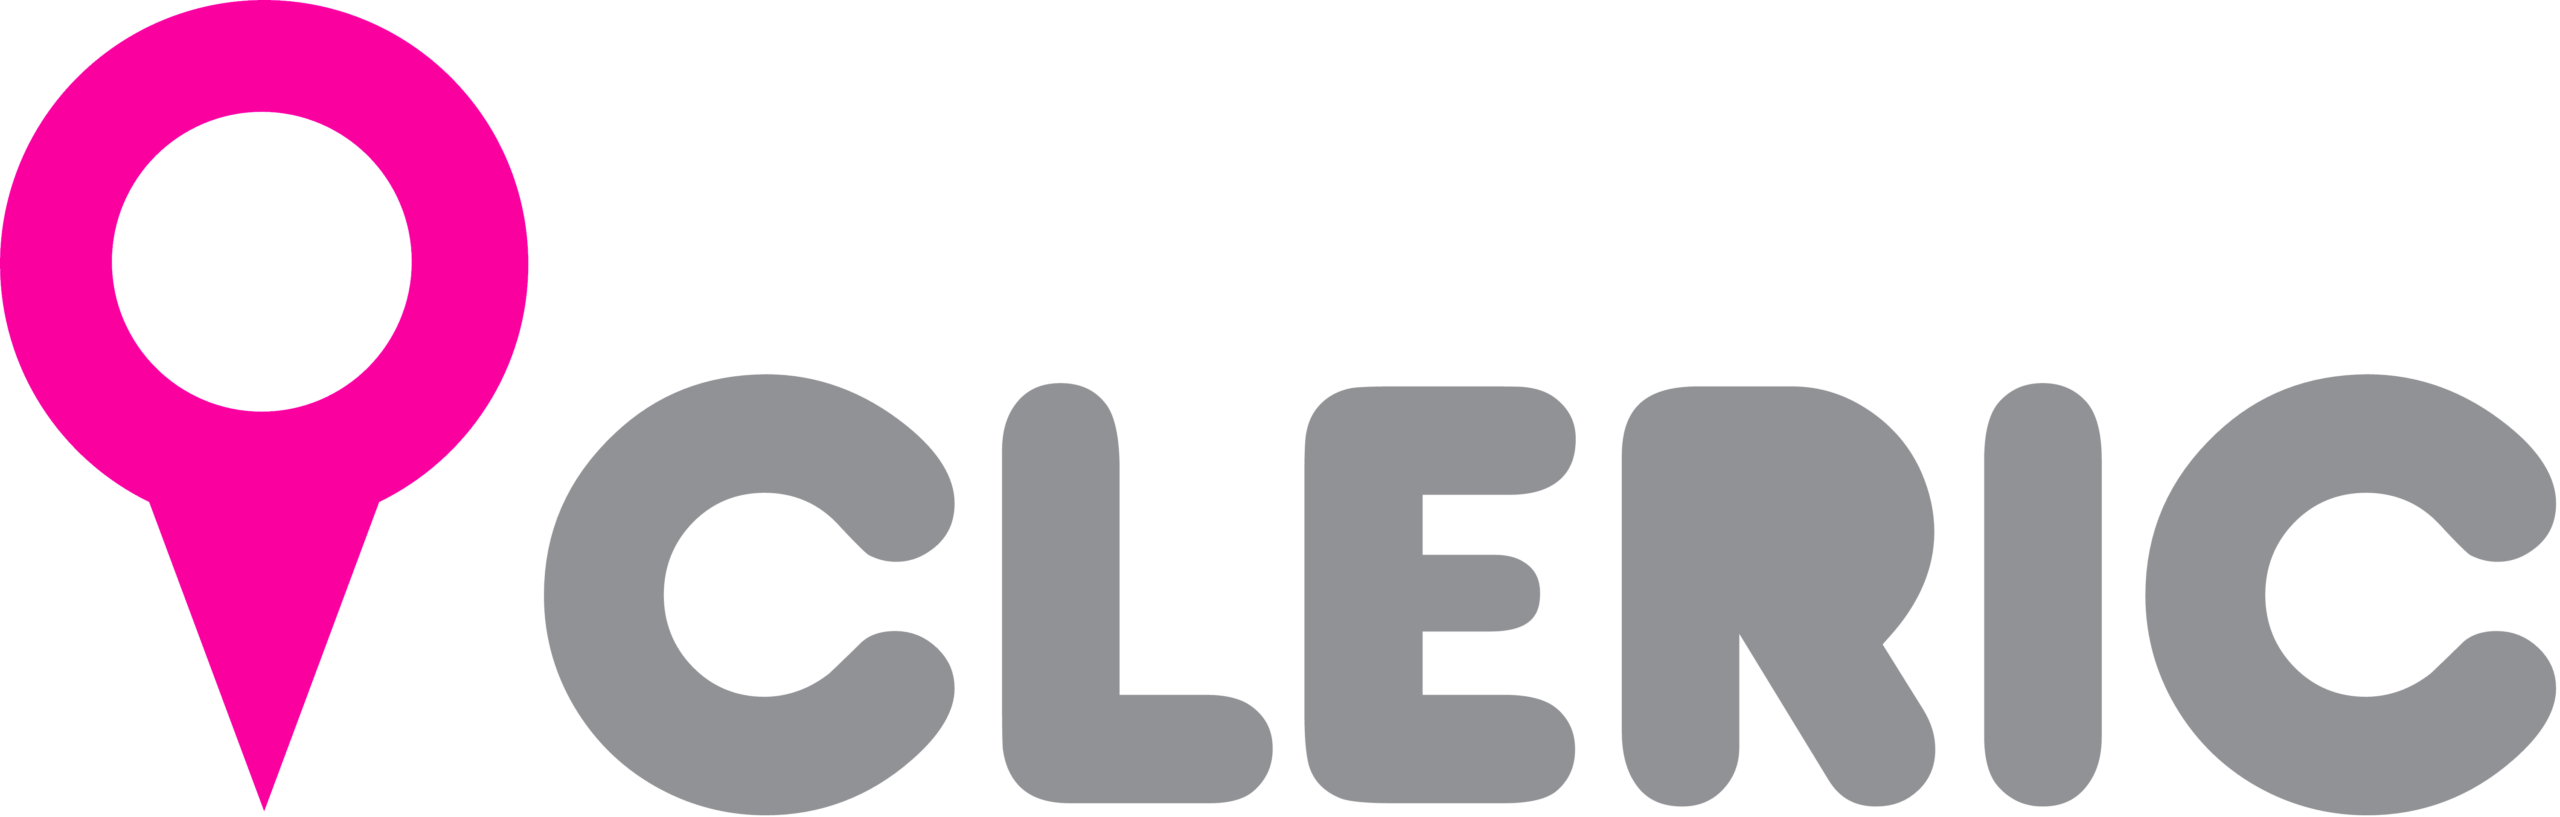 Cleric Computer Services Ltd